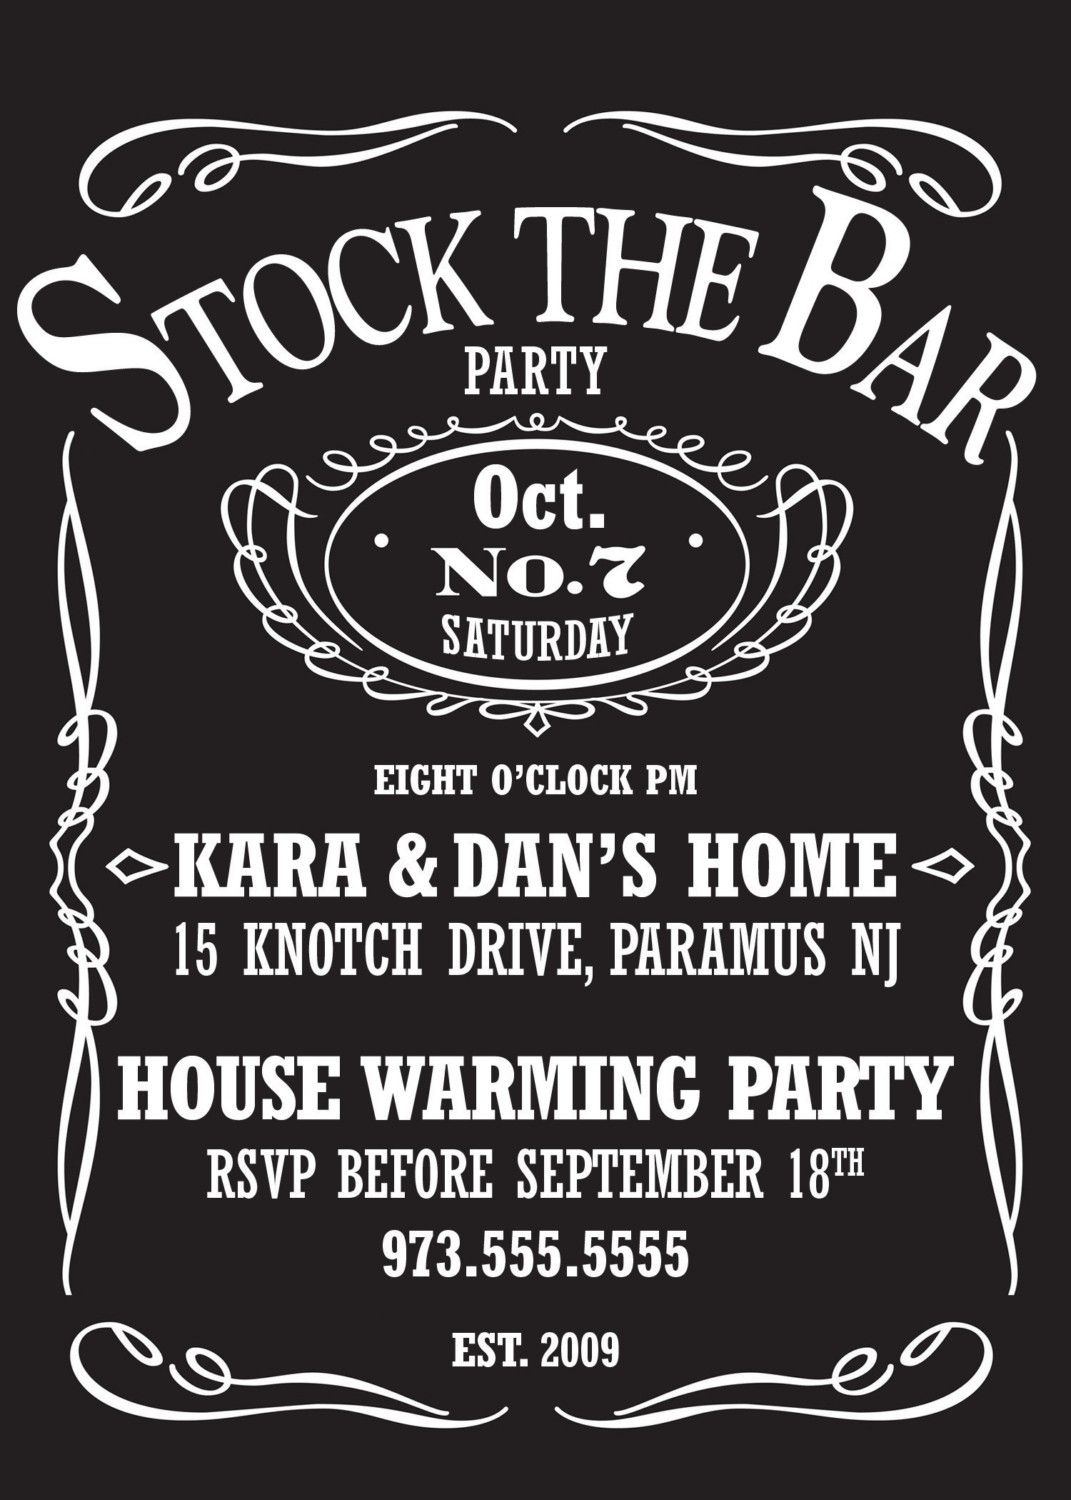 Stock The Bar Party Invite | Jack daniels label, Jack daniels and ...